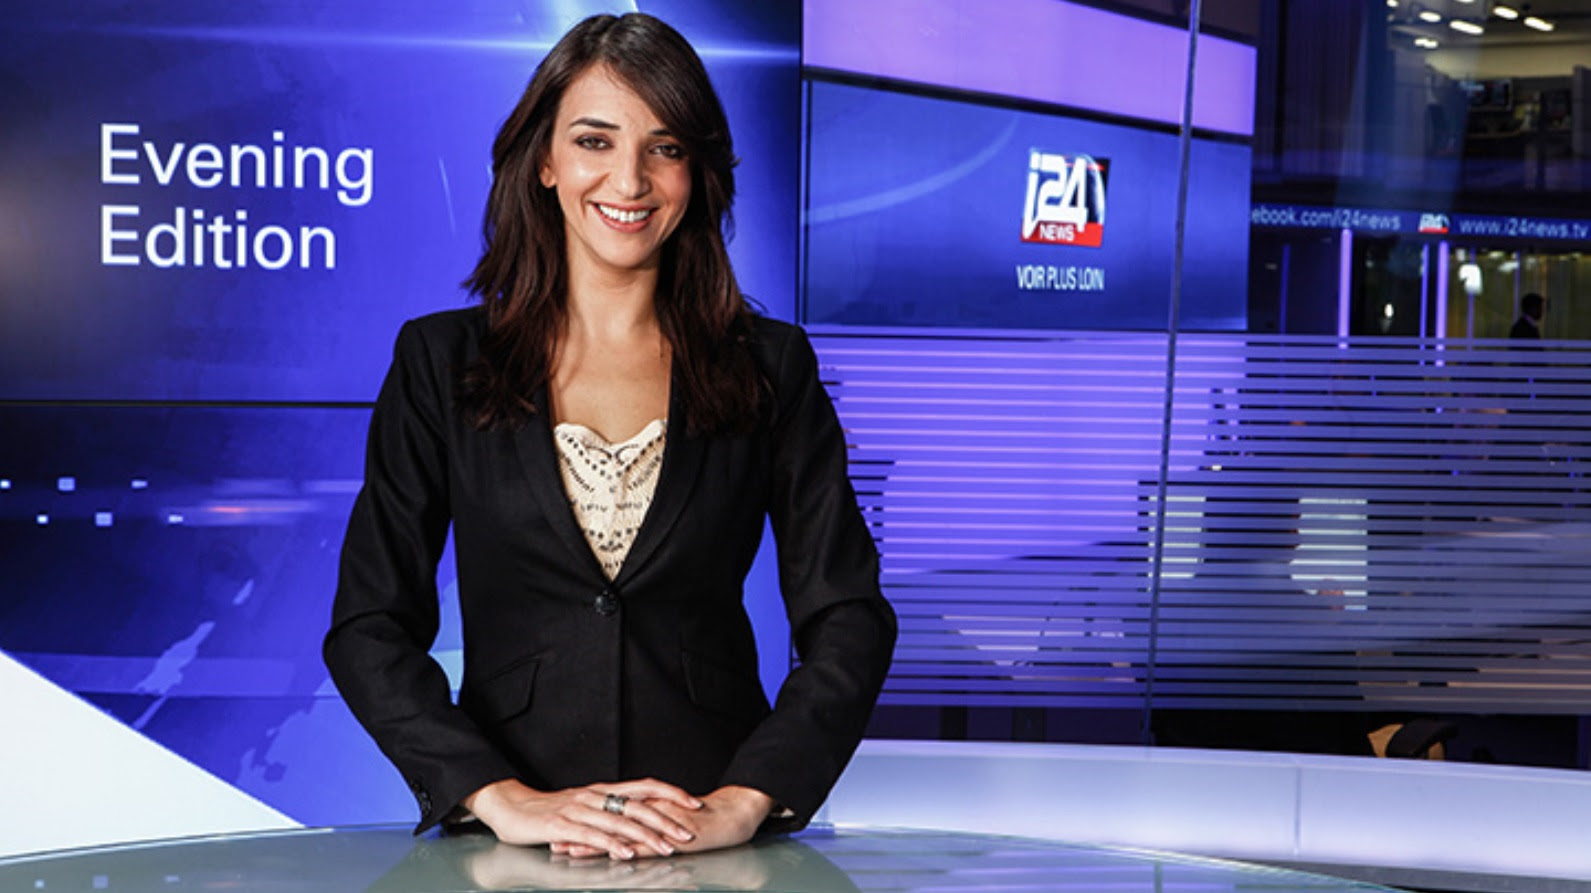 Lucy Aharish anchoring the news. Photo by Kfir Ziv Photography